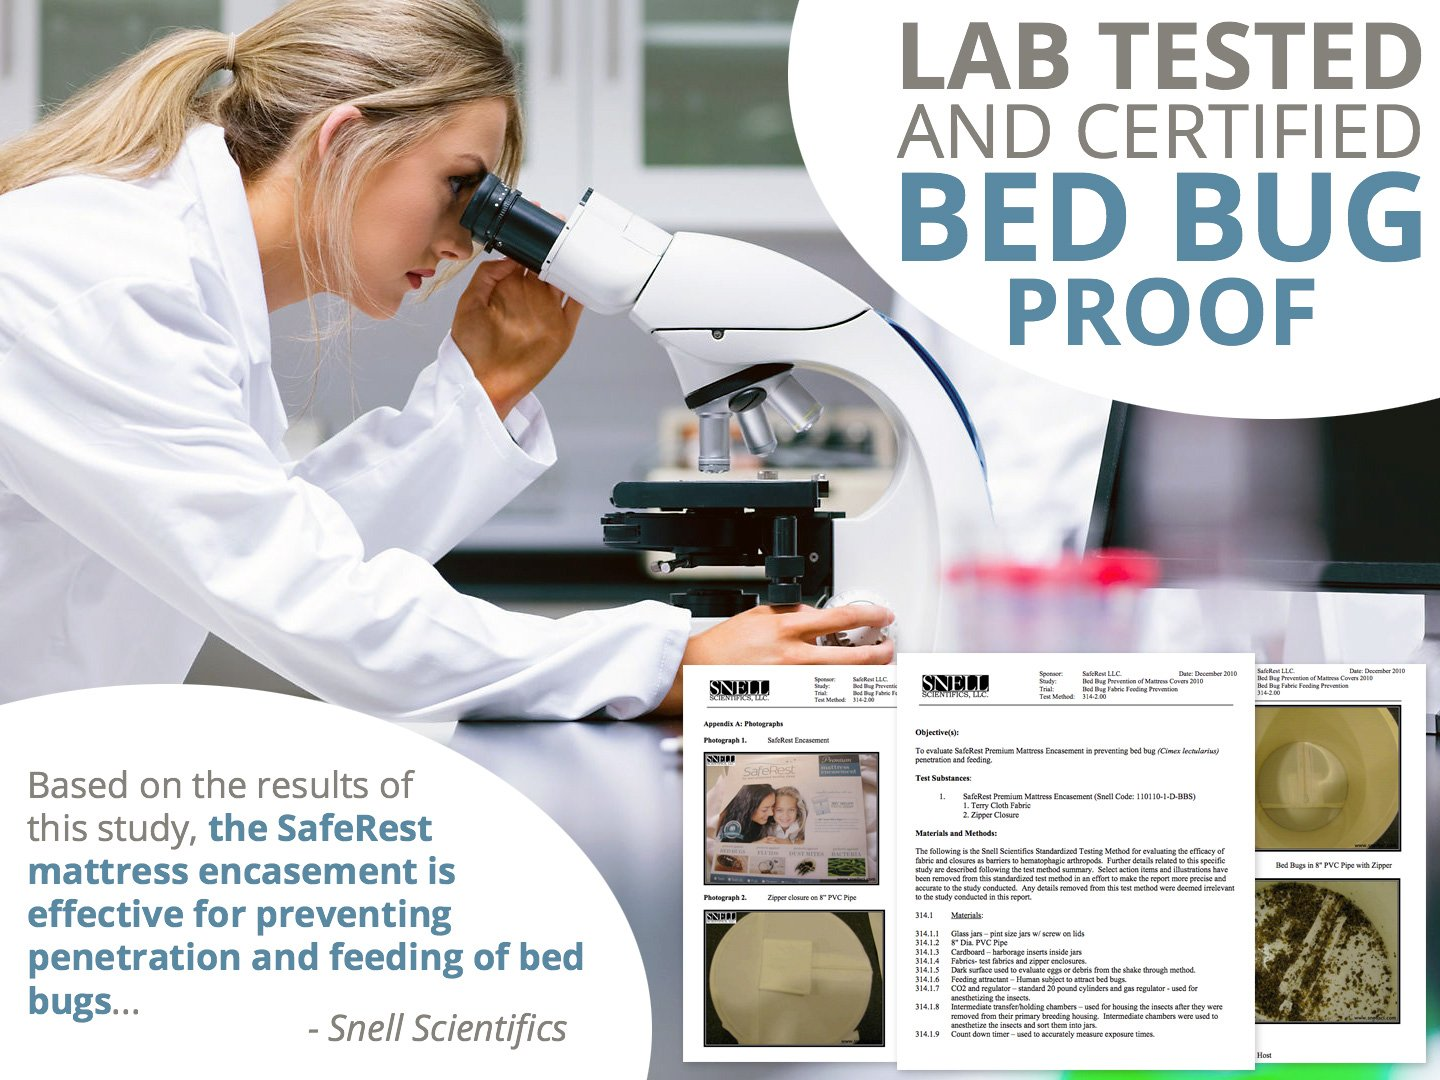 SafeRest Premium Hypoallergenic Waterproof Certified Bed Bug Proof Crib Mattress Encasement - Vinyl, PVC and Phthalate Free - (52'' x 28 x 6 in.)